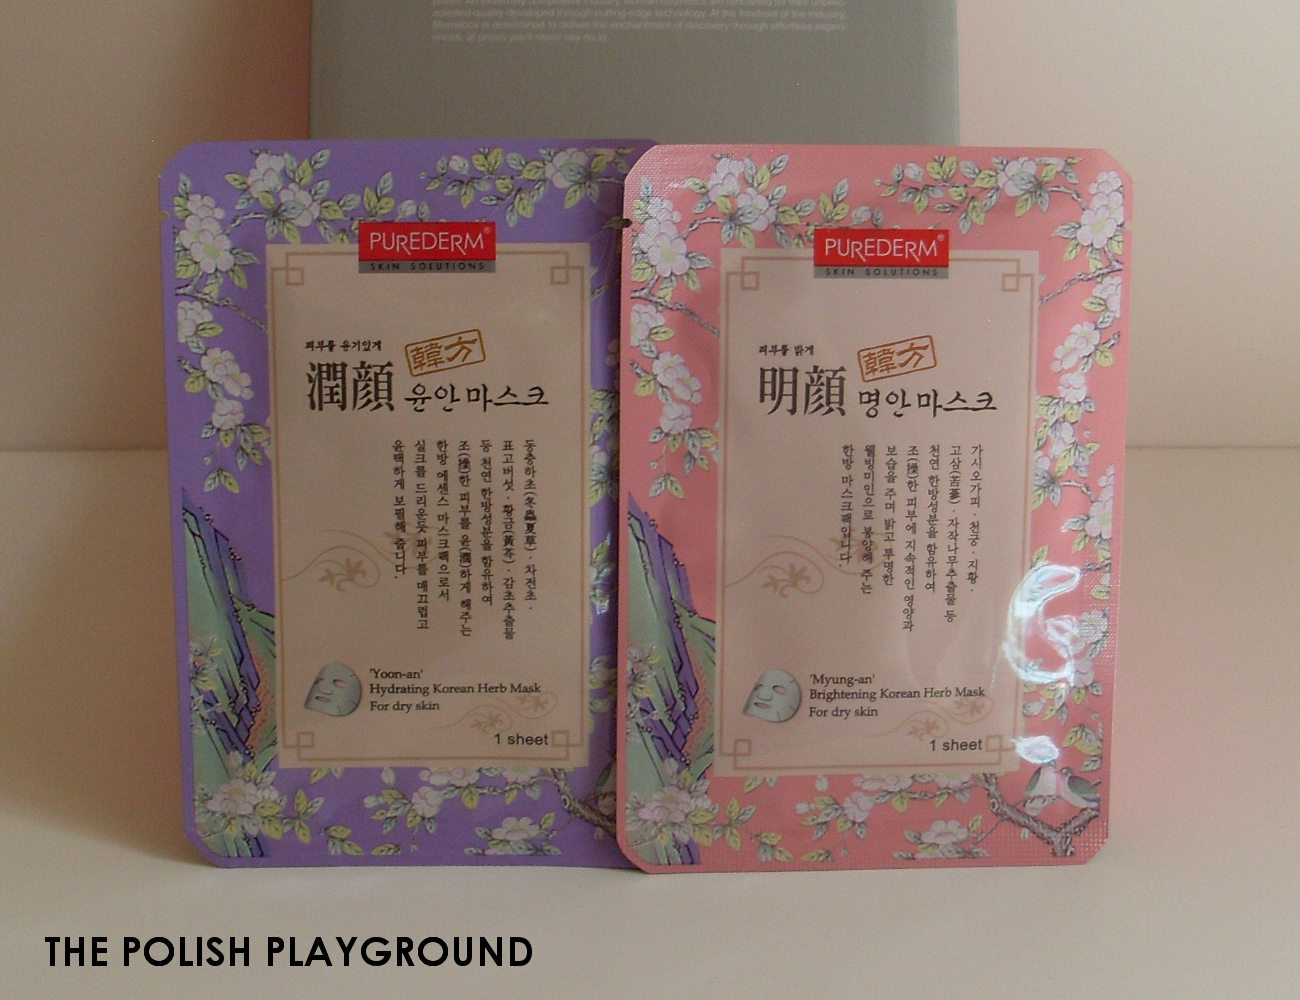 Memebox Special #8 Oriental Medicine Unboxing - Purederm Korean Herb Mask in 'Yoon-an' Hydrating Mask and 'Myung-an' Brightening Mask